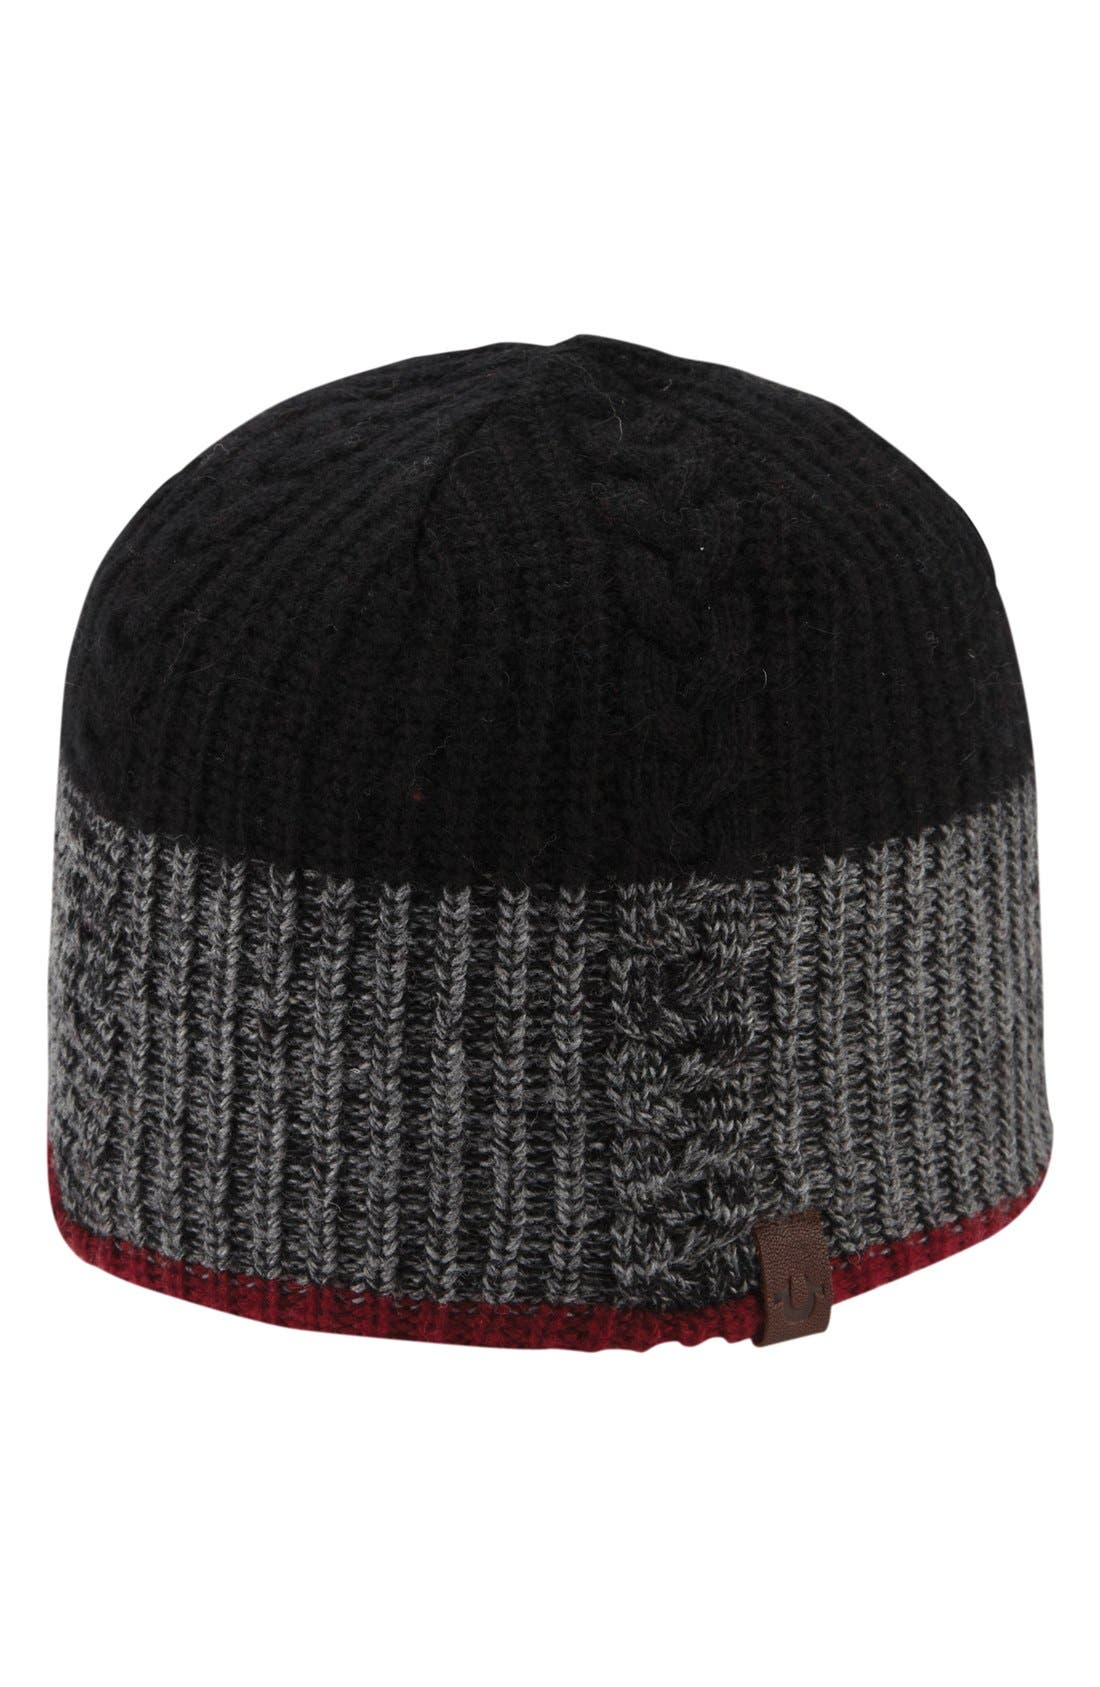 Main Image - True Religion Brand Jeans Cable Knit Cap